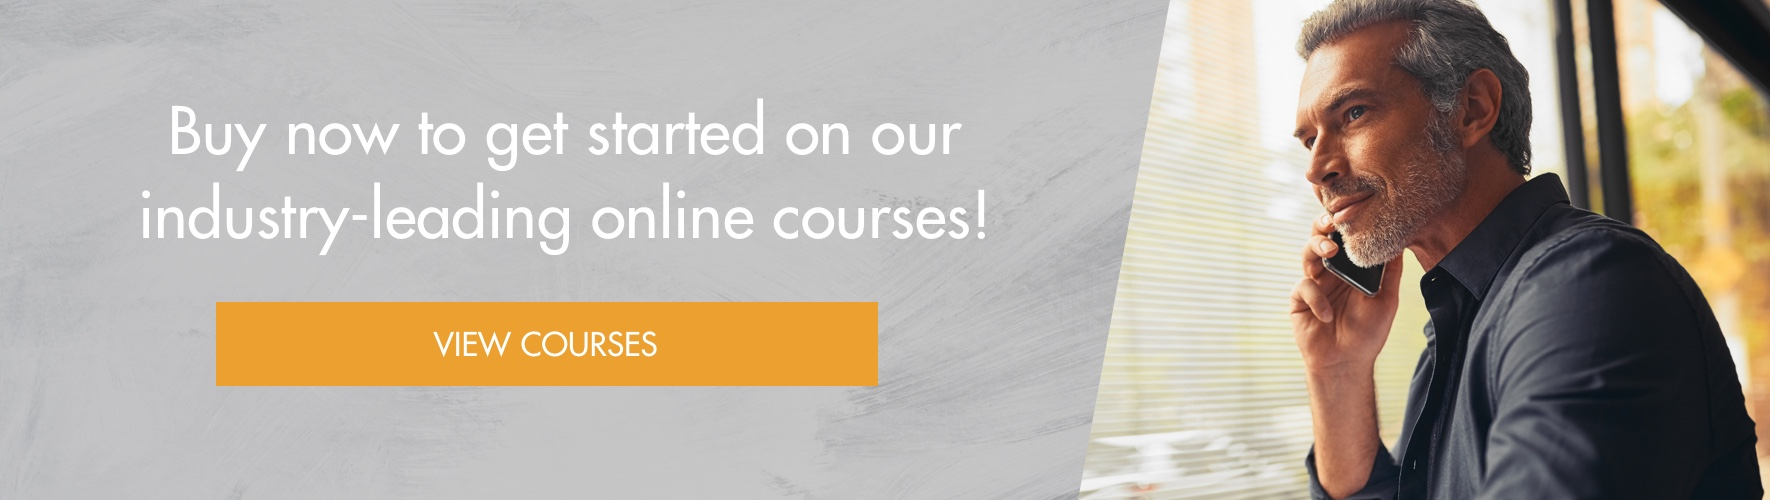 Buy now to get started on our industry-leading online courses!